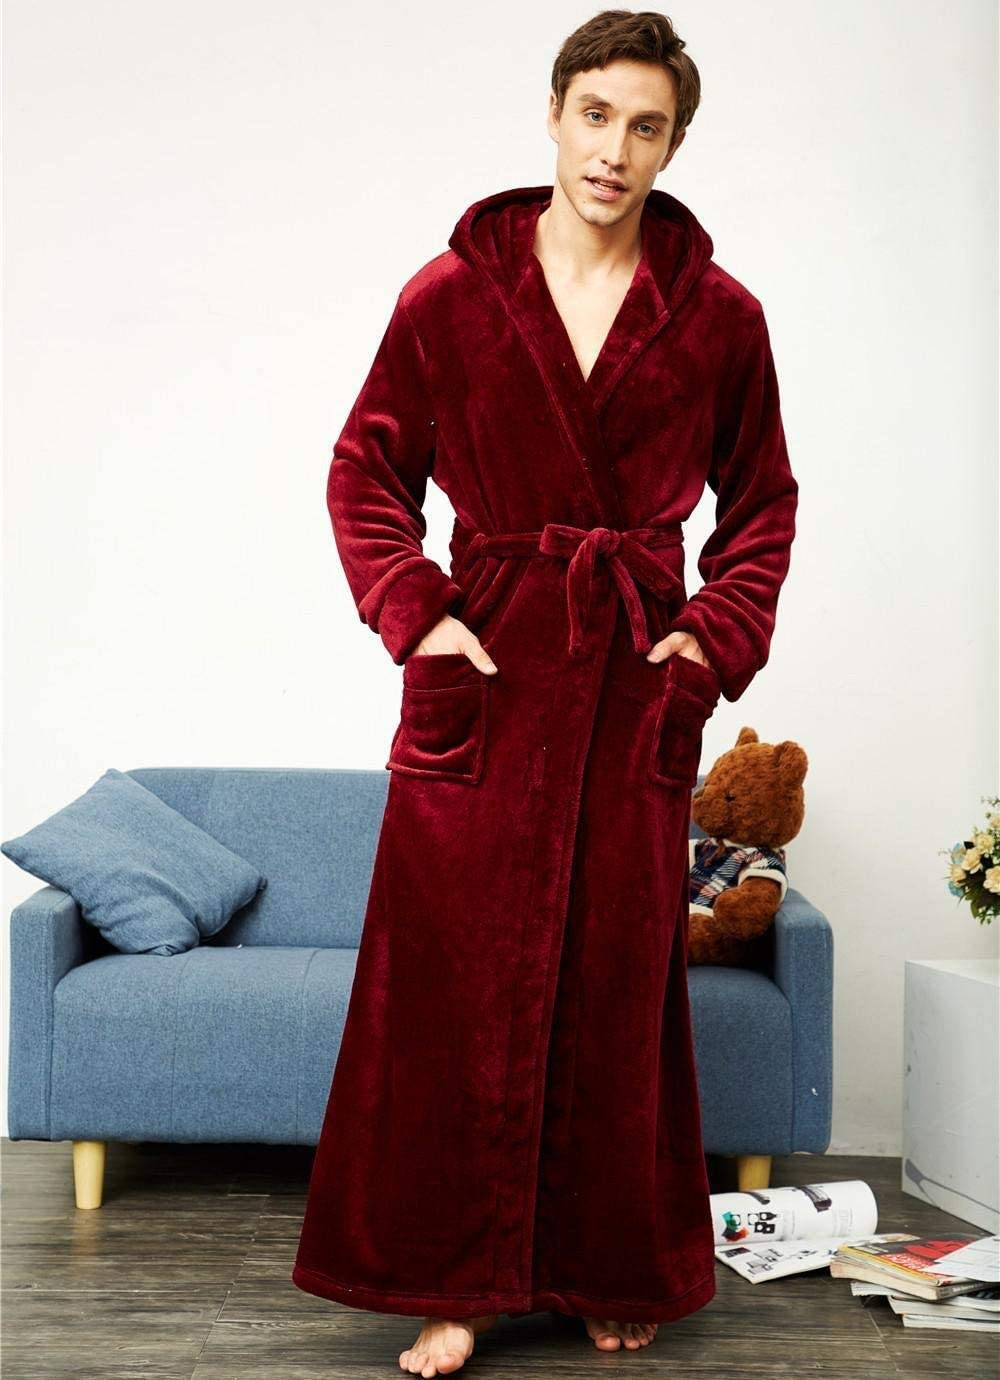 QYLLXSYY Winter Robe Winter Warm Ultral Long Flannel Men Robe Gown Casual Loose Hood Sleepwear for 130KG Bathrobe Men Women Thick Large Home Clothes (Color : Men Red, Size : L)